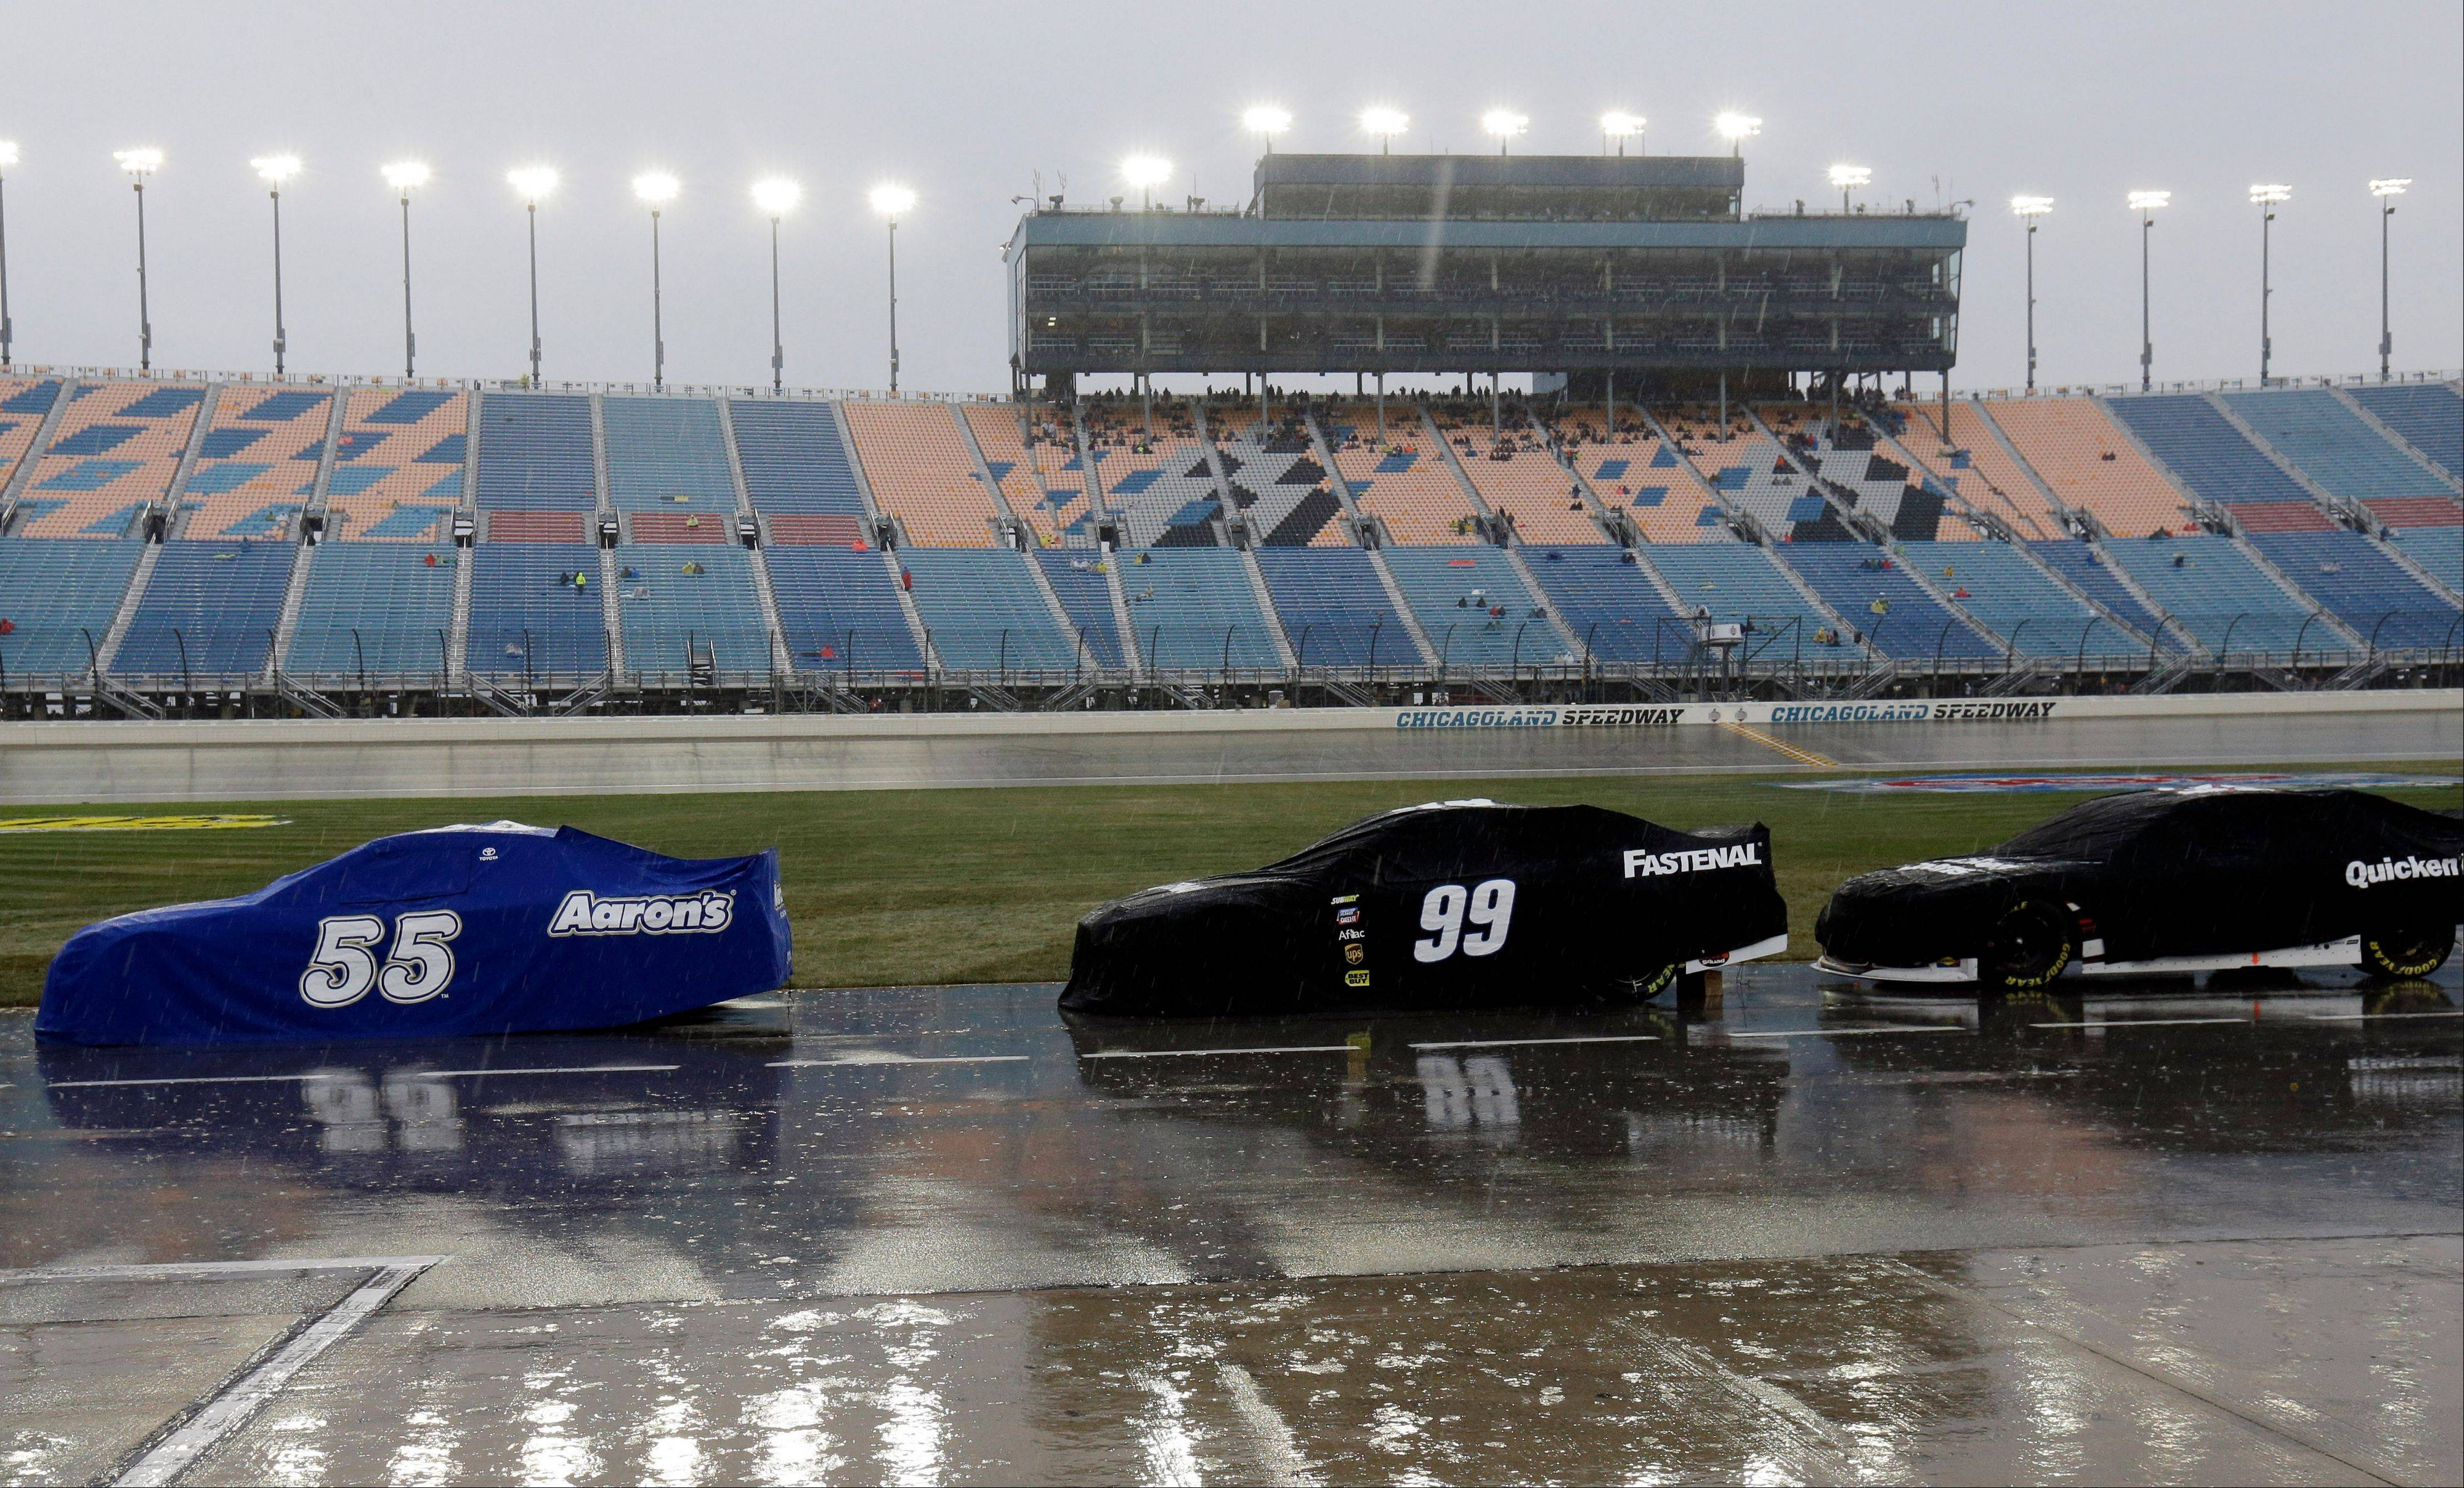 Covered Sprint Cup Series race cars are parked on pit road during rain delay in the NASCAR Sprint Cup series auto race at Chicagoland Speedway in Joliet, Ill., Sunday, Sept. 15, 2013.